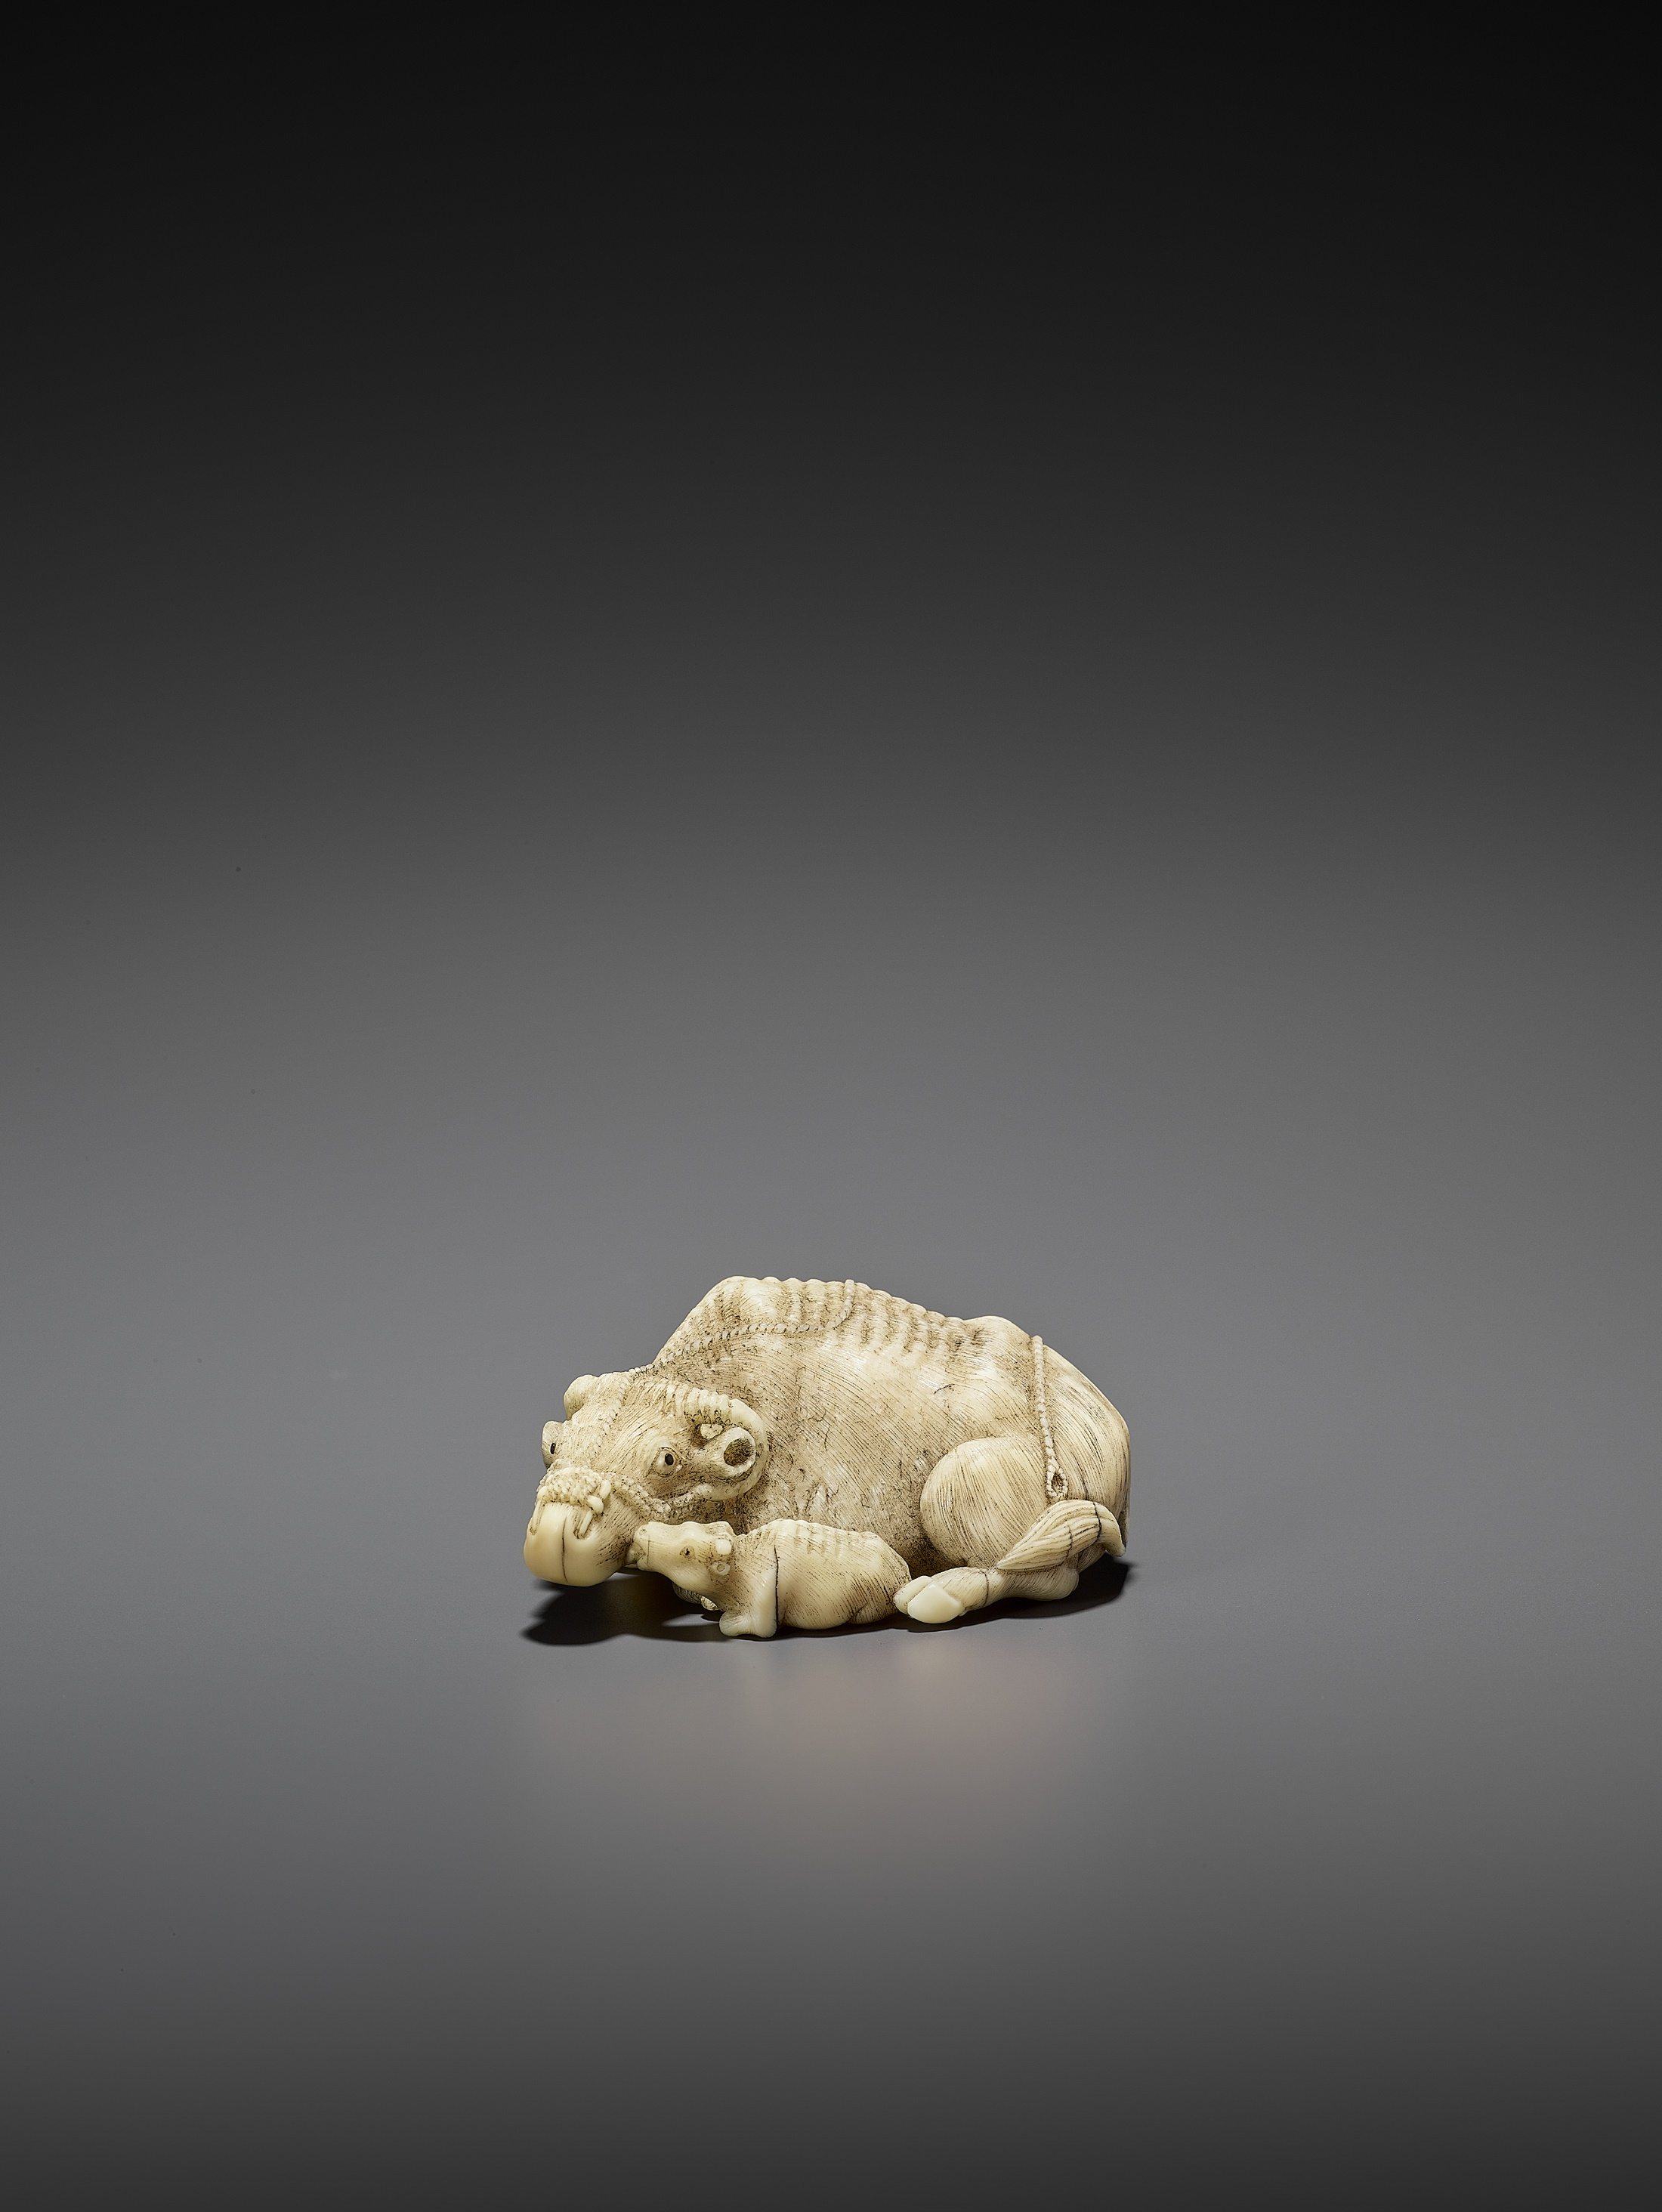 MITSUCHIKA: A LARGE AND RARE WALRUS IVORY NETSUKE OF A RECUMBENT COW WITH CALF - Image 3 of 3